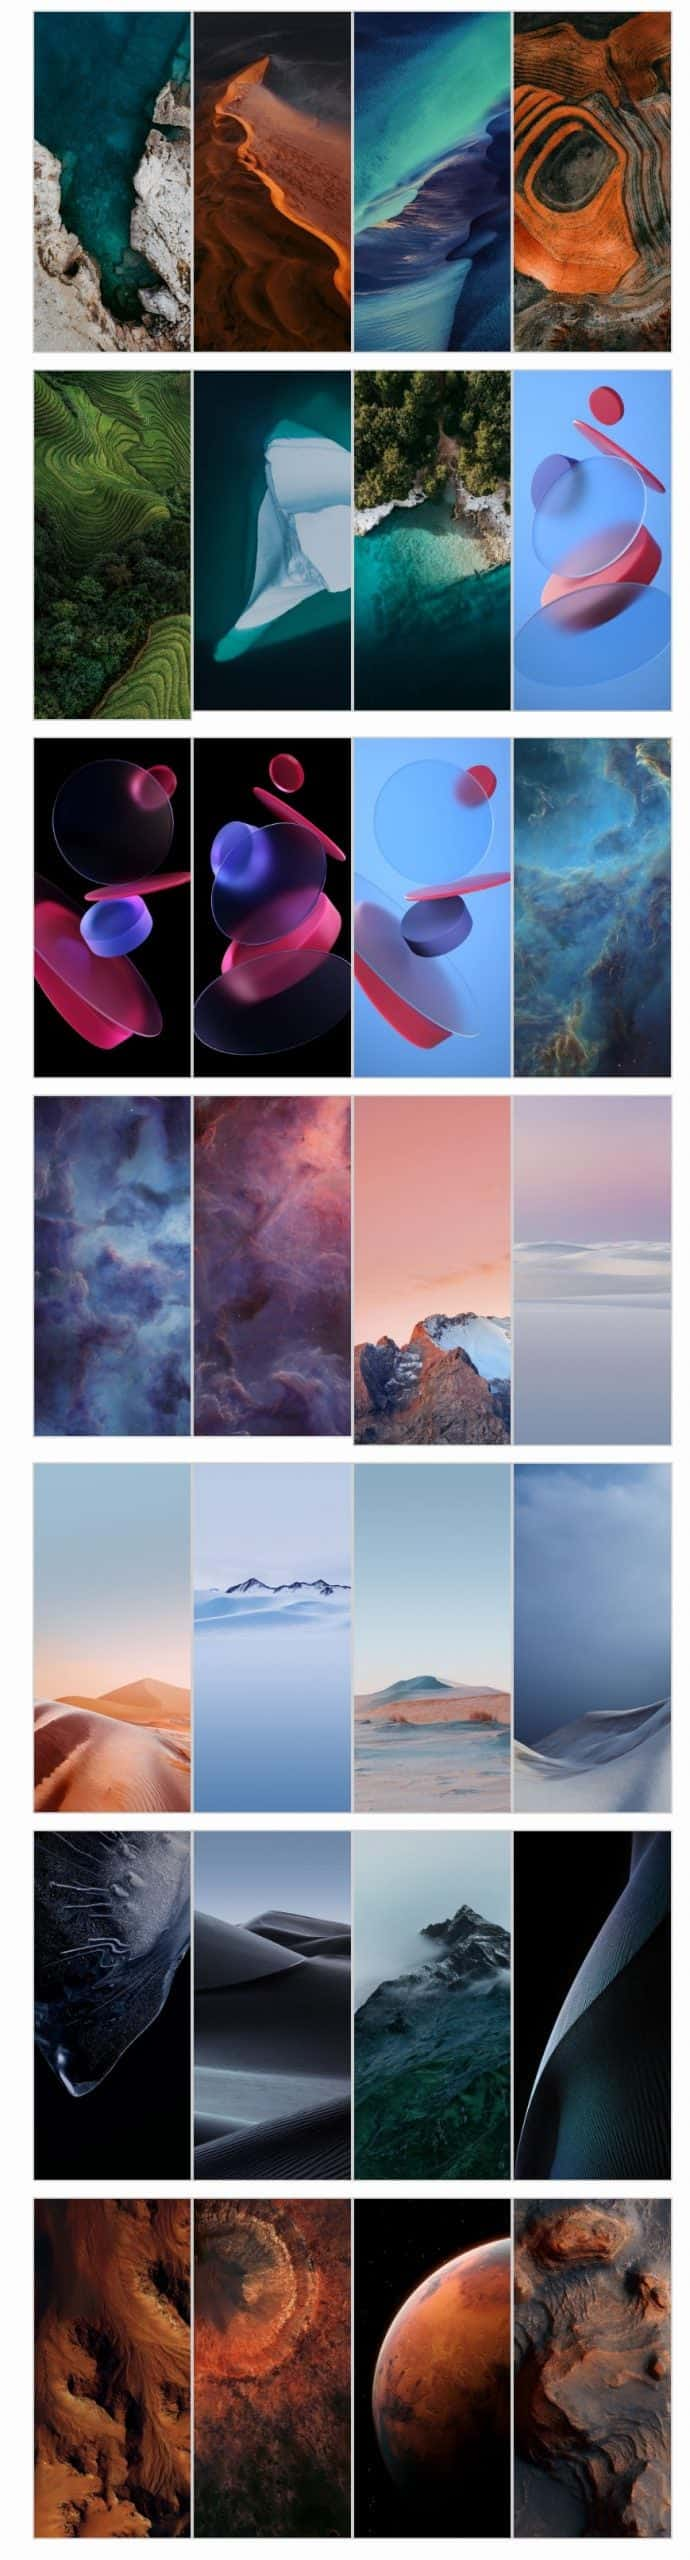 Miui 12 Download The New Wallpapers In Full Resolution Gizchina Com